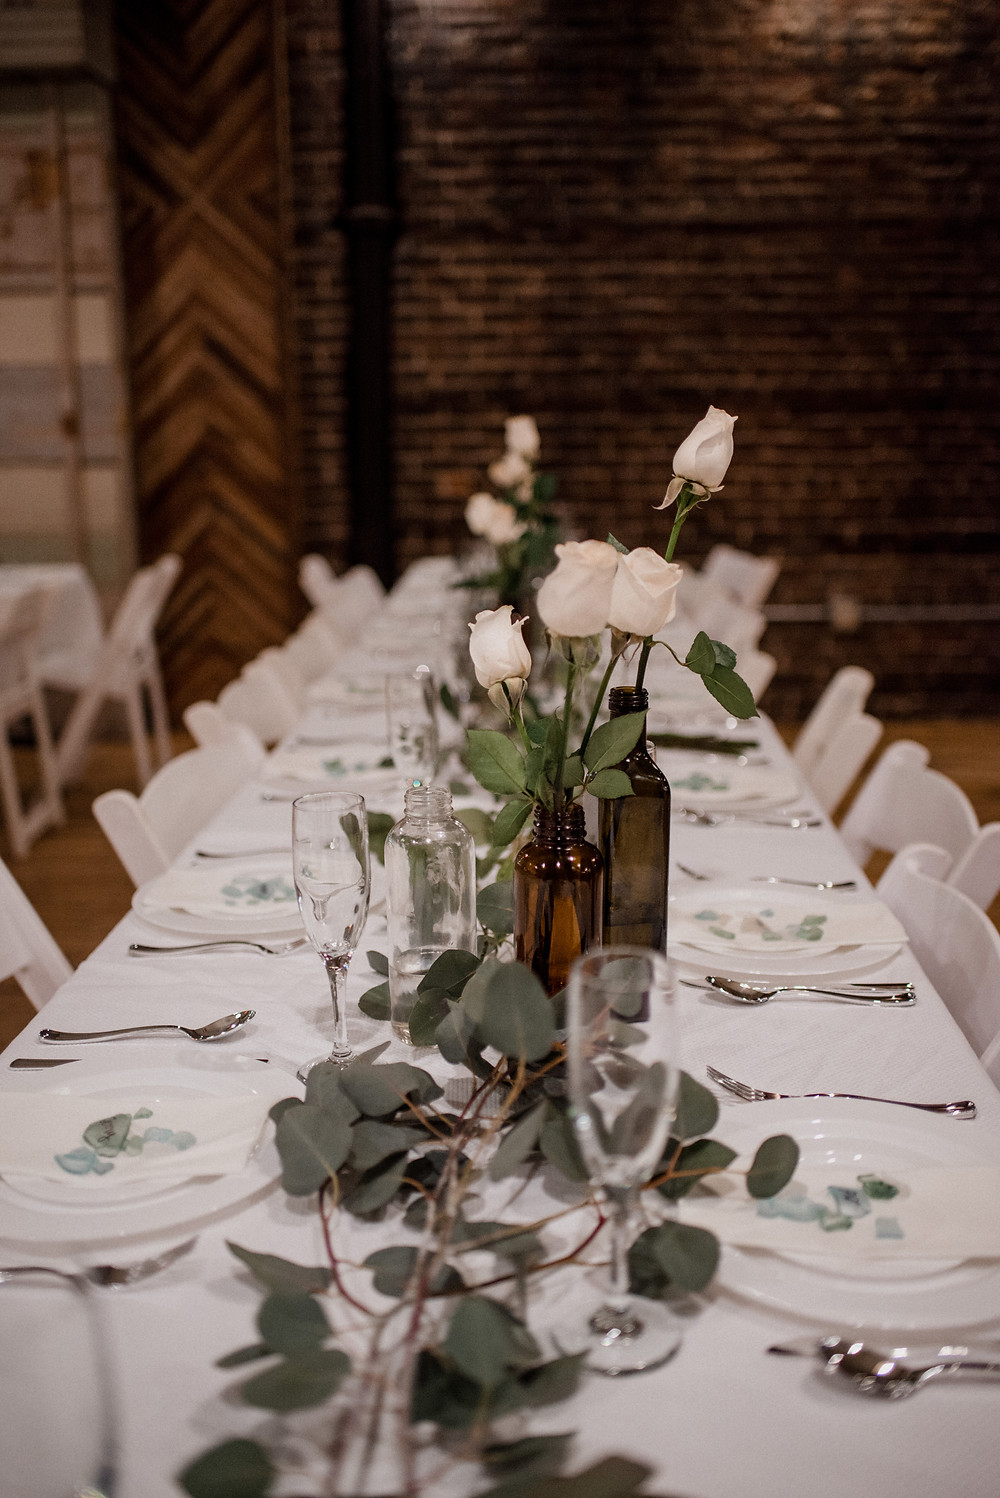 https://www.nicolekilian.com/single-post/2018/01/10/Greathouse-Wedding-Alabaster-Coffee-House-in-Williamsport-PA